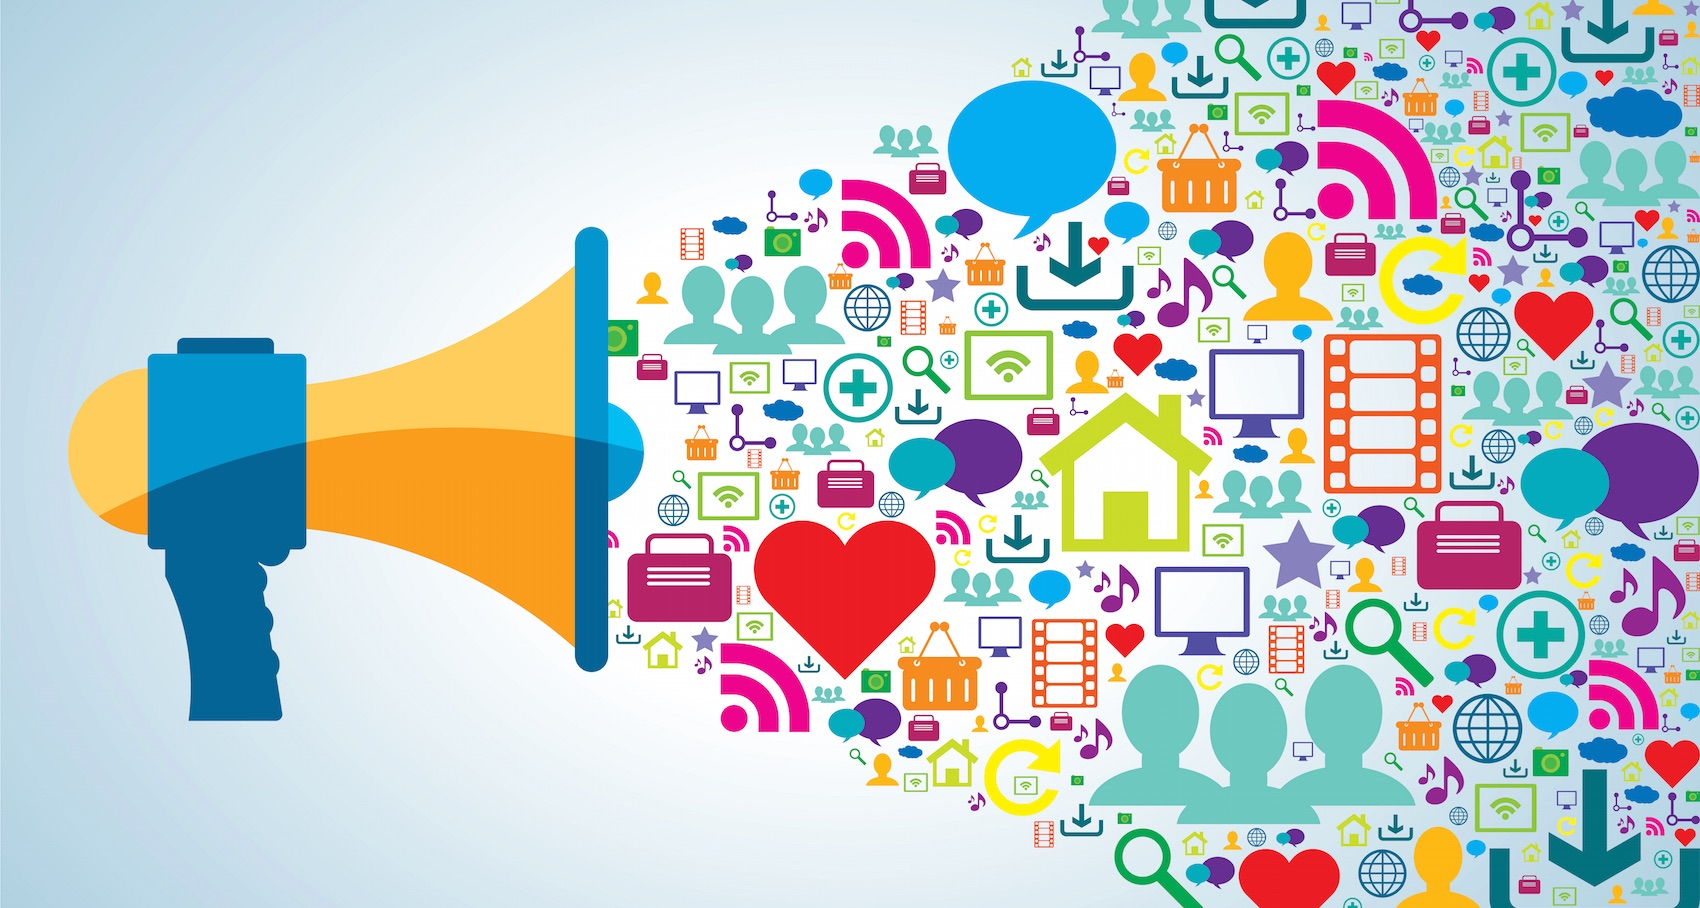 Maximize the marketing potential of any social media network